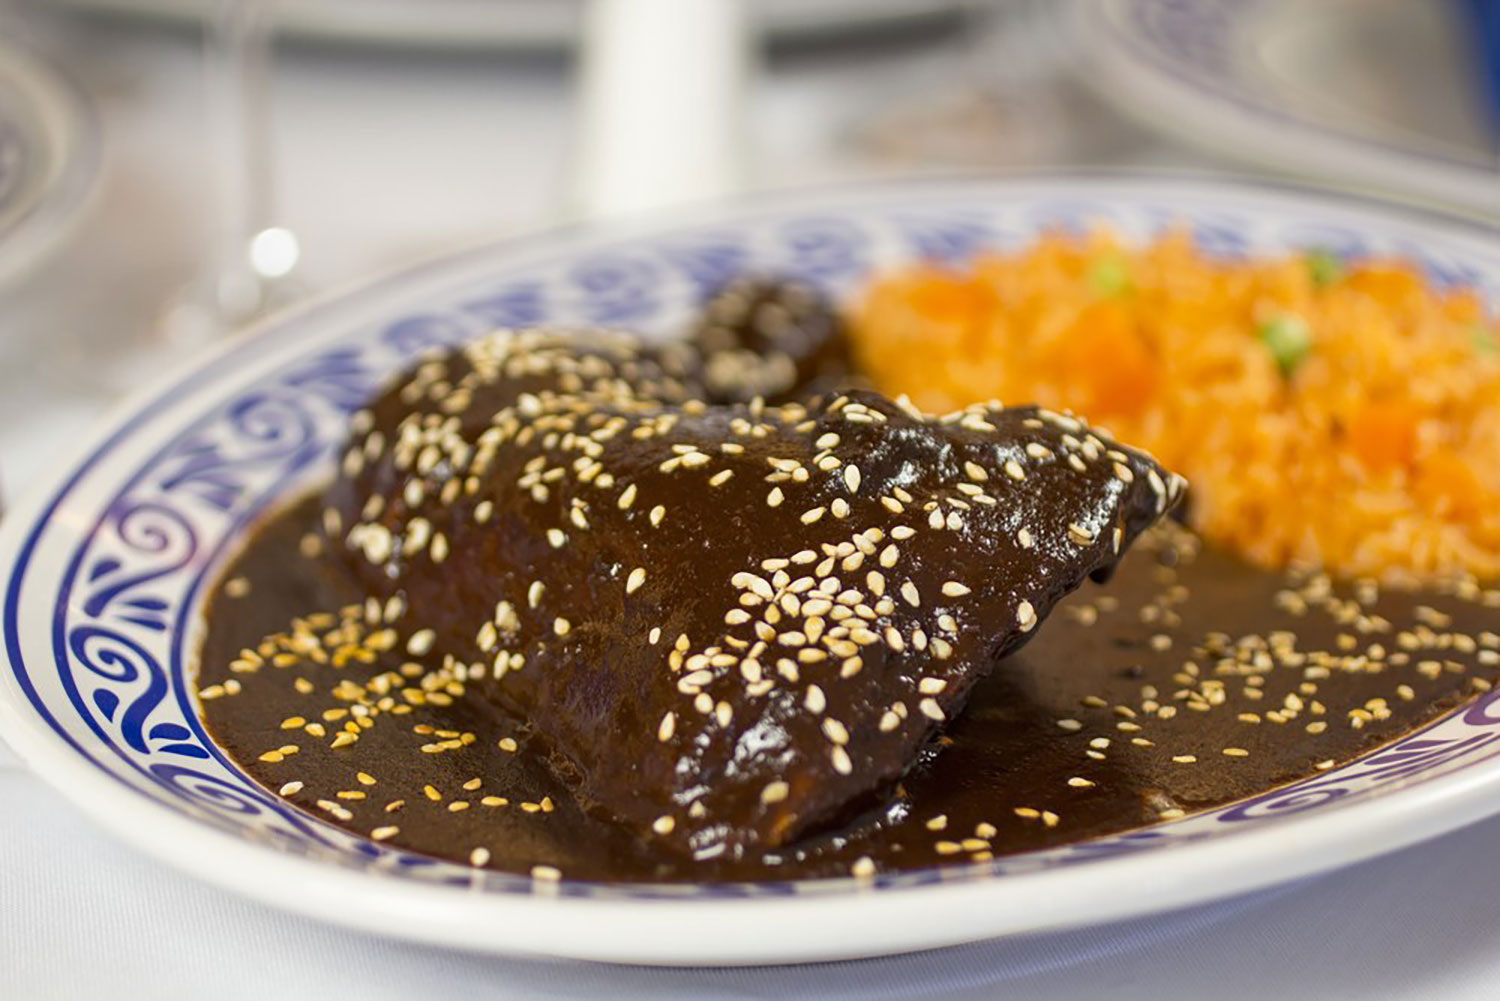 Chicken mole. Right: La Gruta. Credit: Flickr.